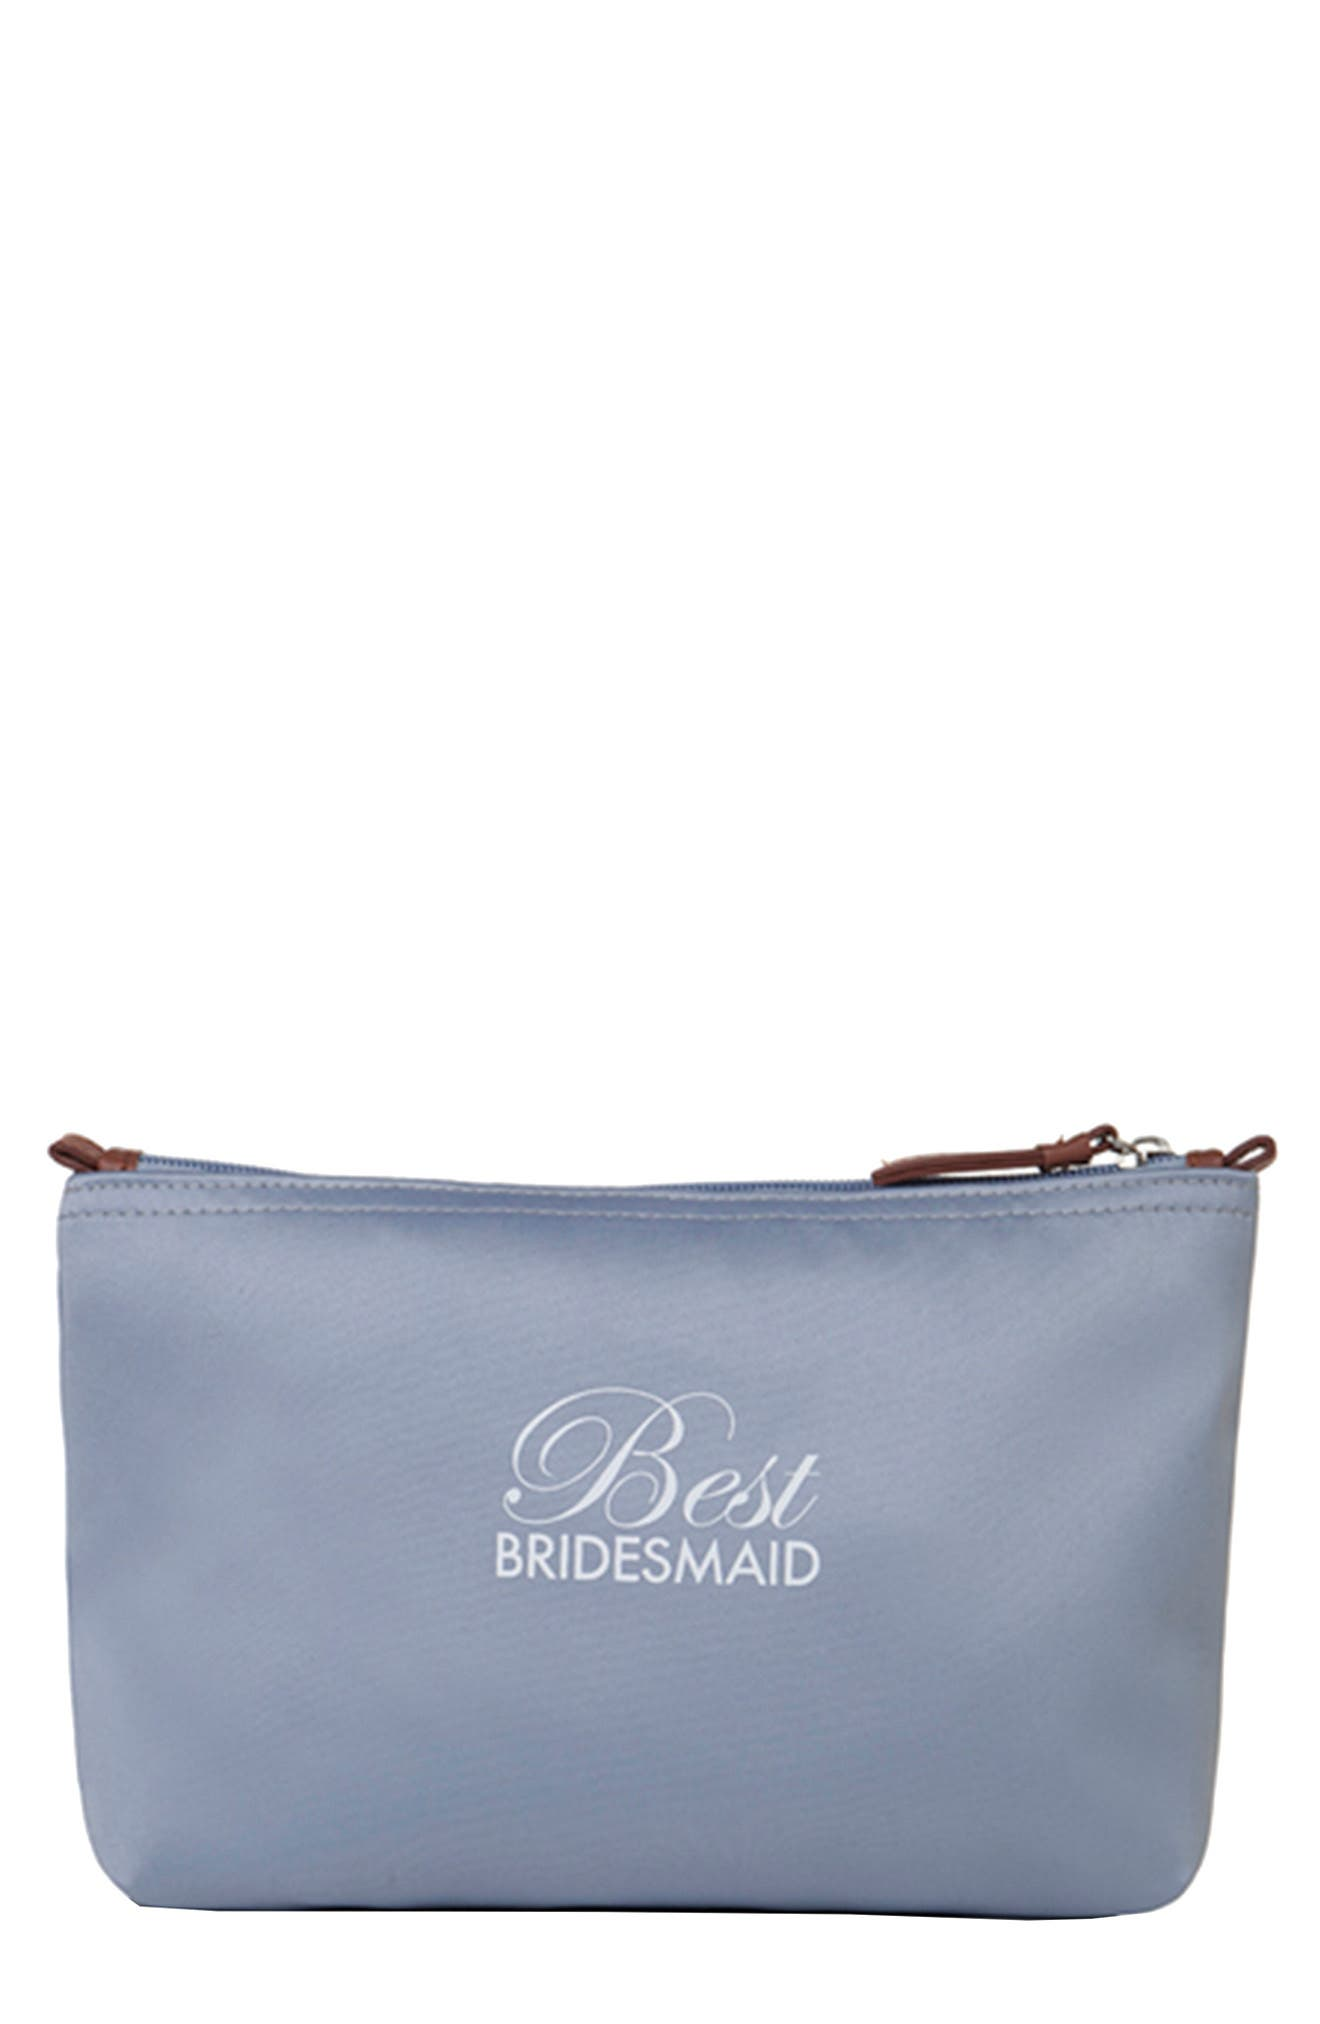 'Best Bridesmaid' Cosmetics Bag,                             Main thumbnail 1, color,                             040